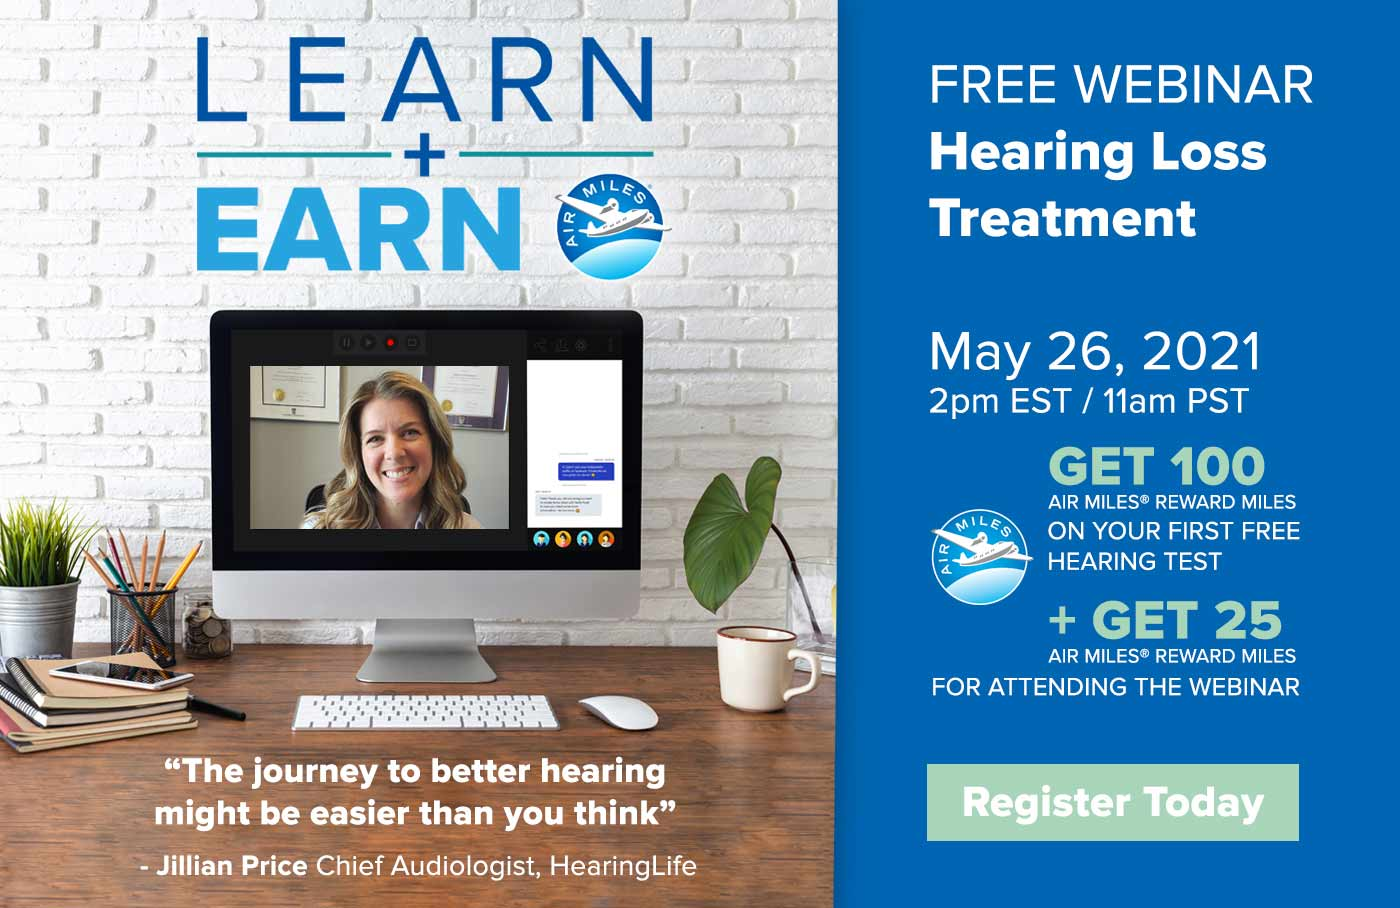 Free webinar hearing loss treatment. May 26th, 2021 2pm EST/ 11am PST. Register today.